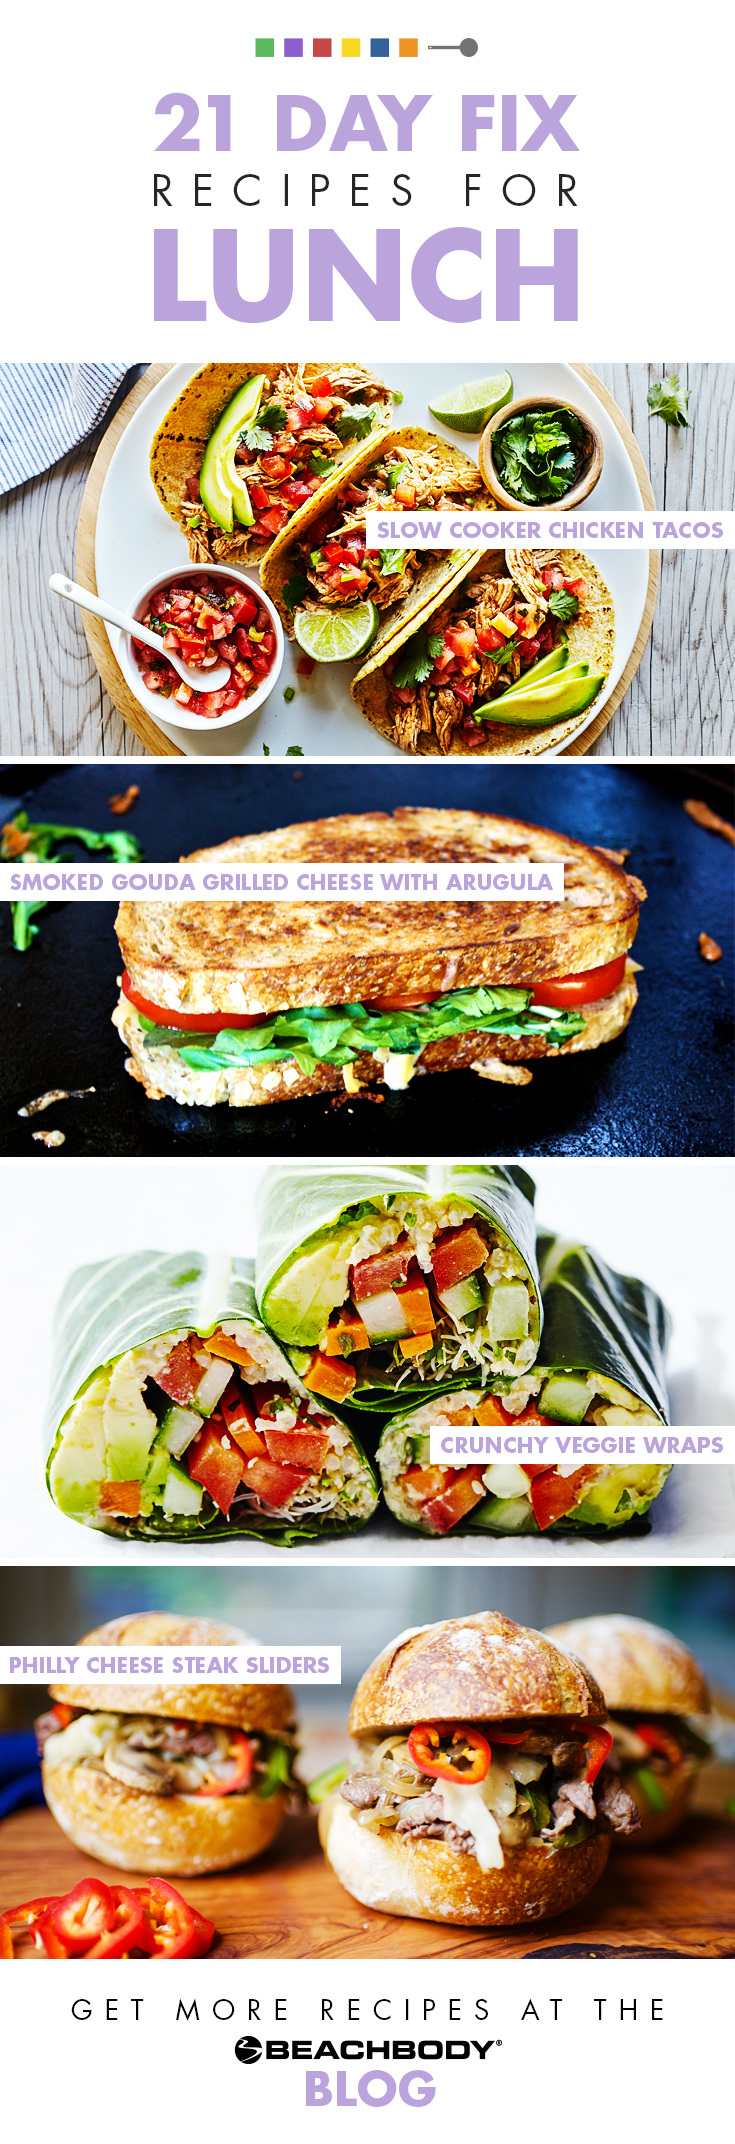 21 Day Fix Recipes for lunch